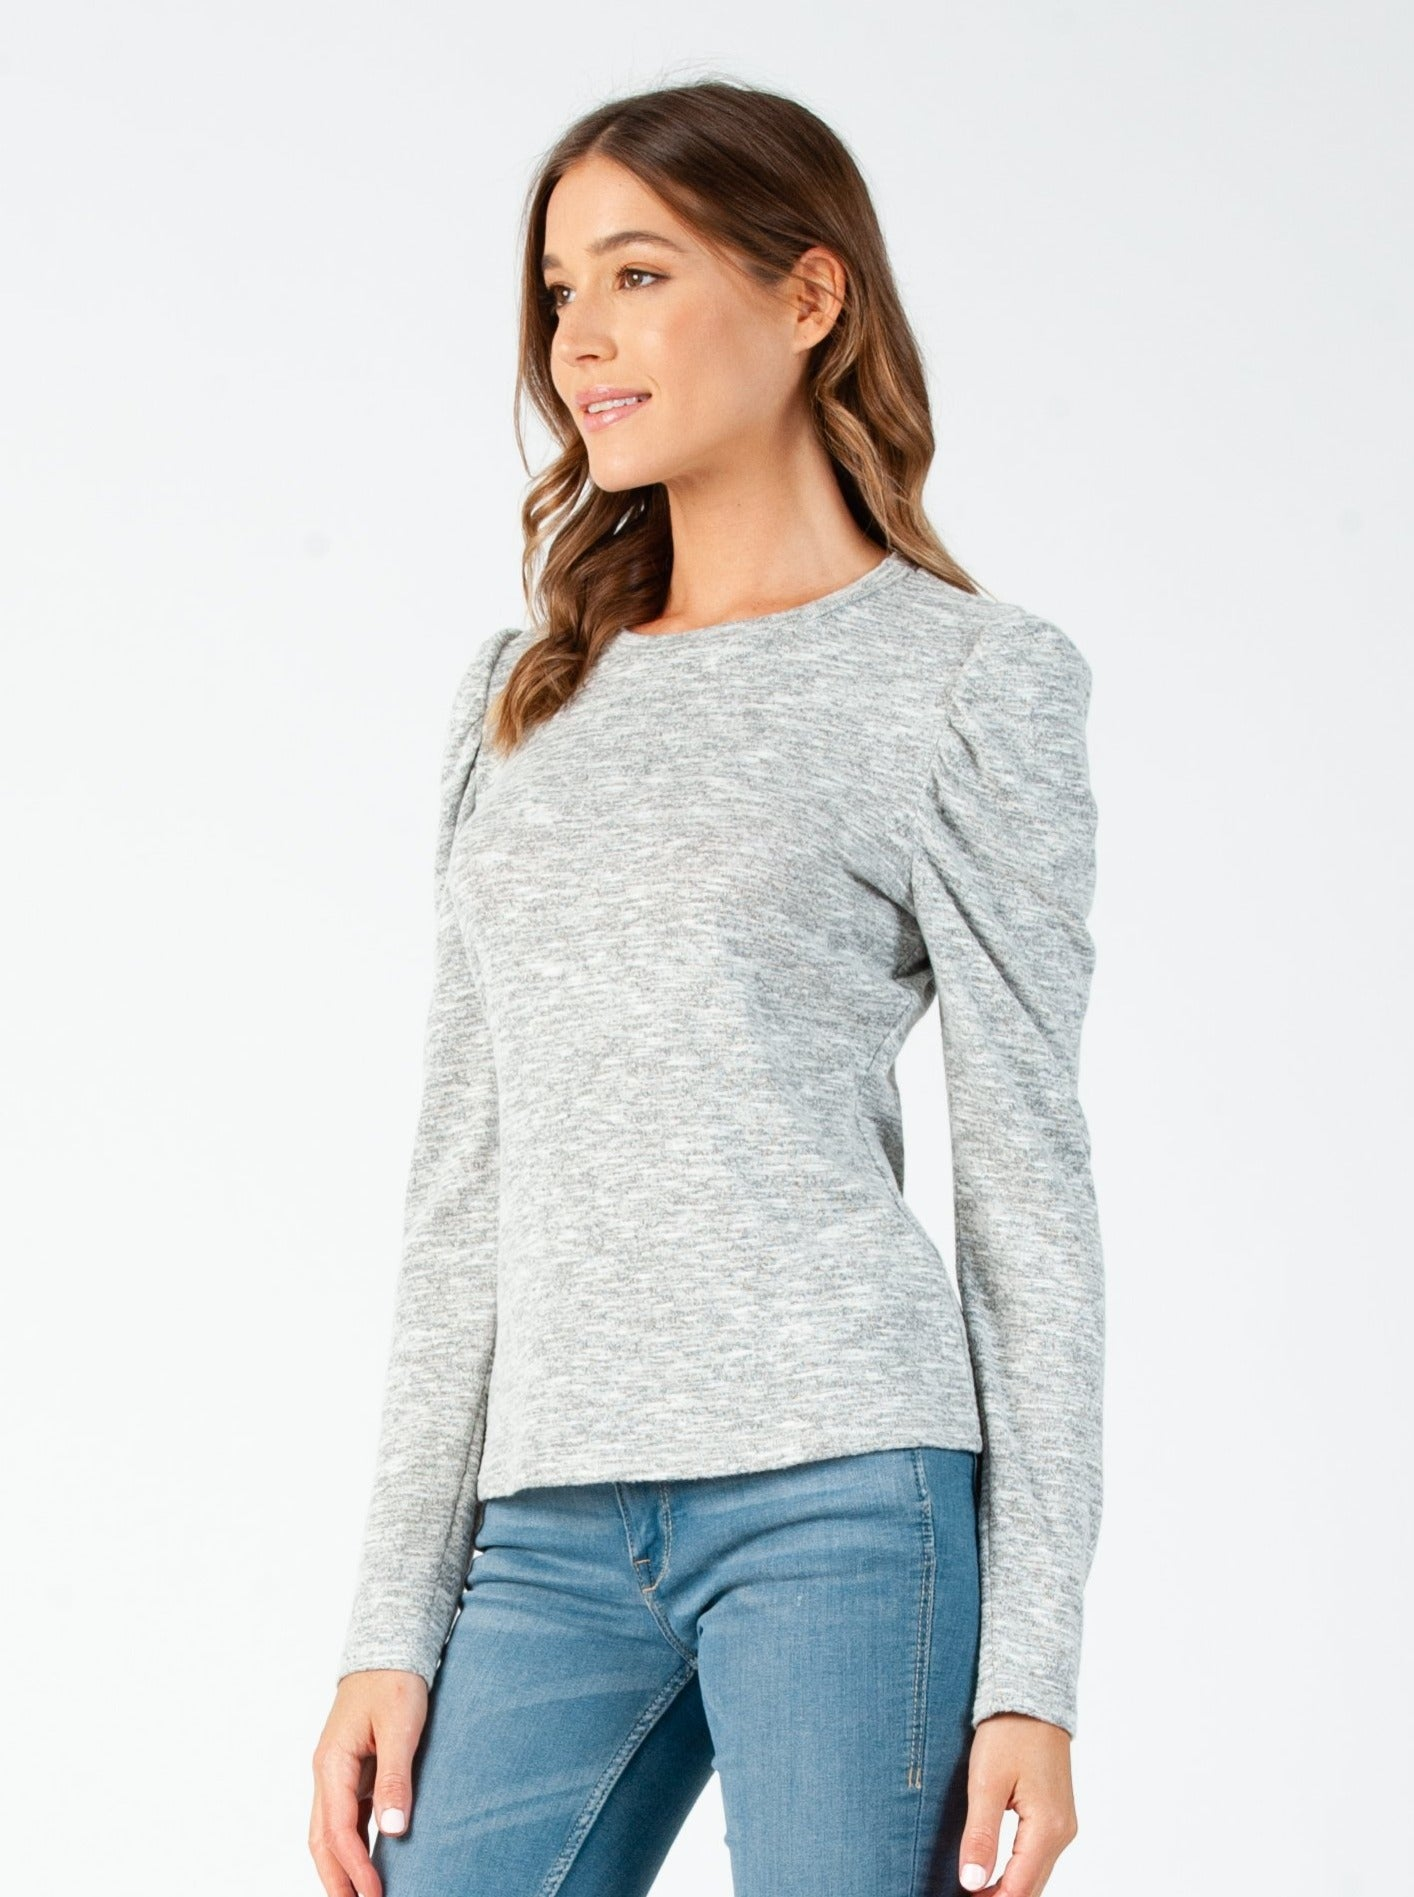 MISTY PUFF LONG SLEEVE BRUSHED HACCI TOP IN HEATHERED GRAY